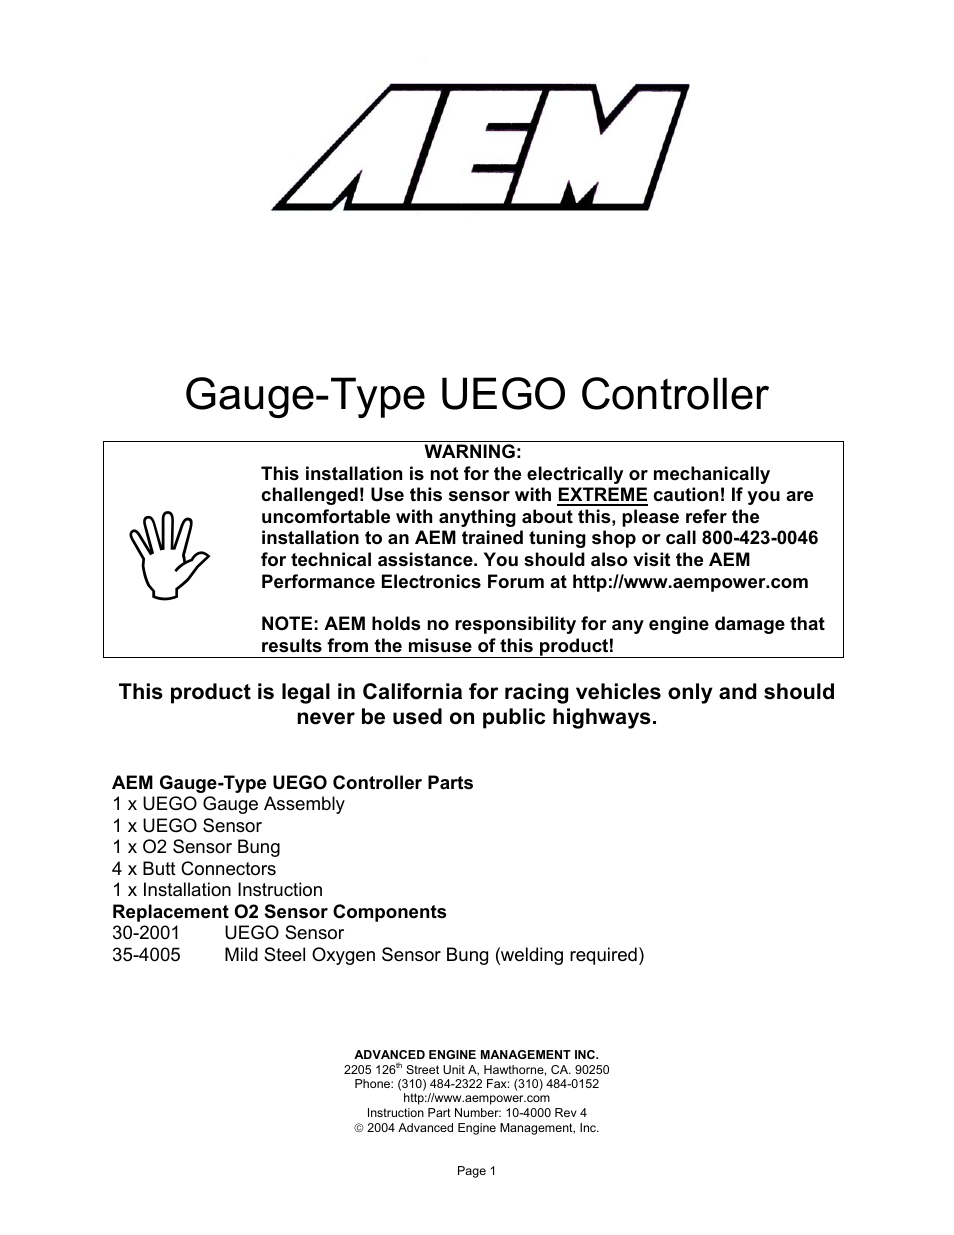 AEM 30-4100 Digital Wideband UEGO Gauge User Manual | 10 pages